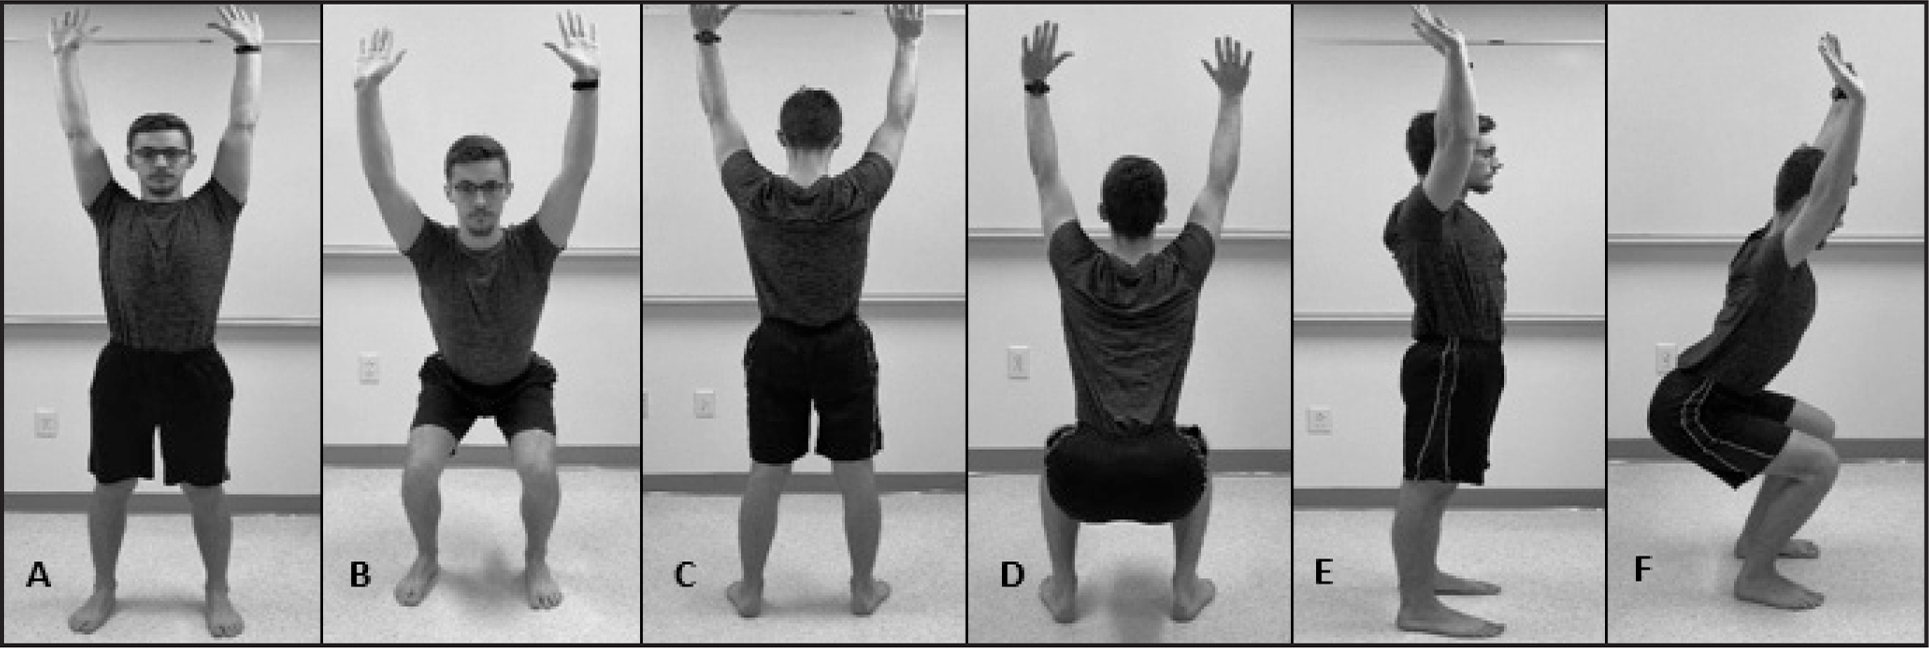 2-Leg Squat sub-test: (A) start position (front view); (B) end position (front view); (C) start position (back view); (D) end position (back view); (E) start position (side view); and (F) end position (side view).